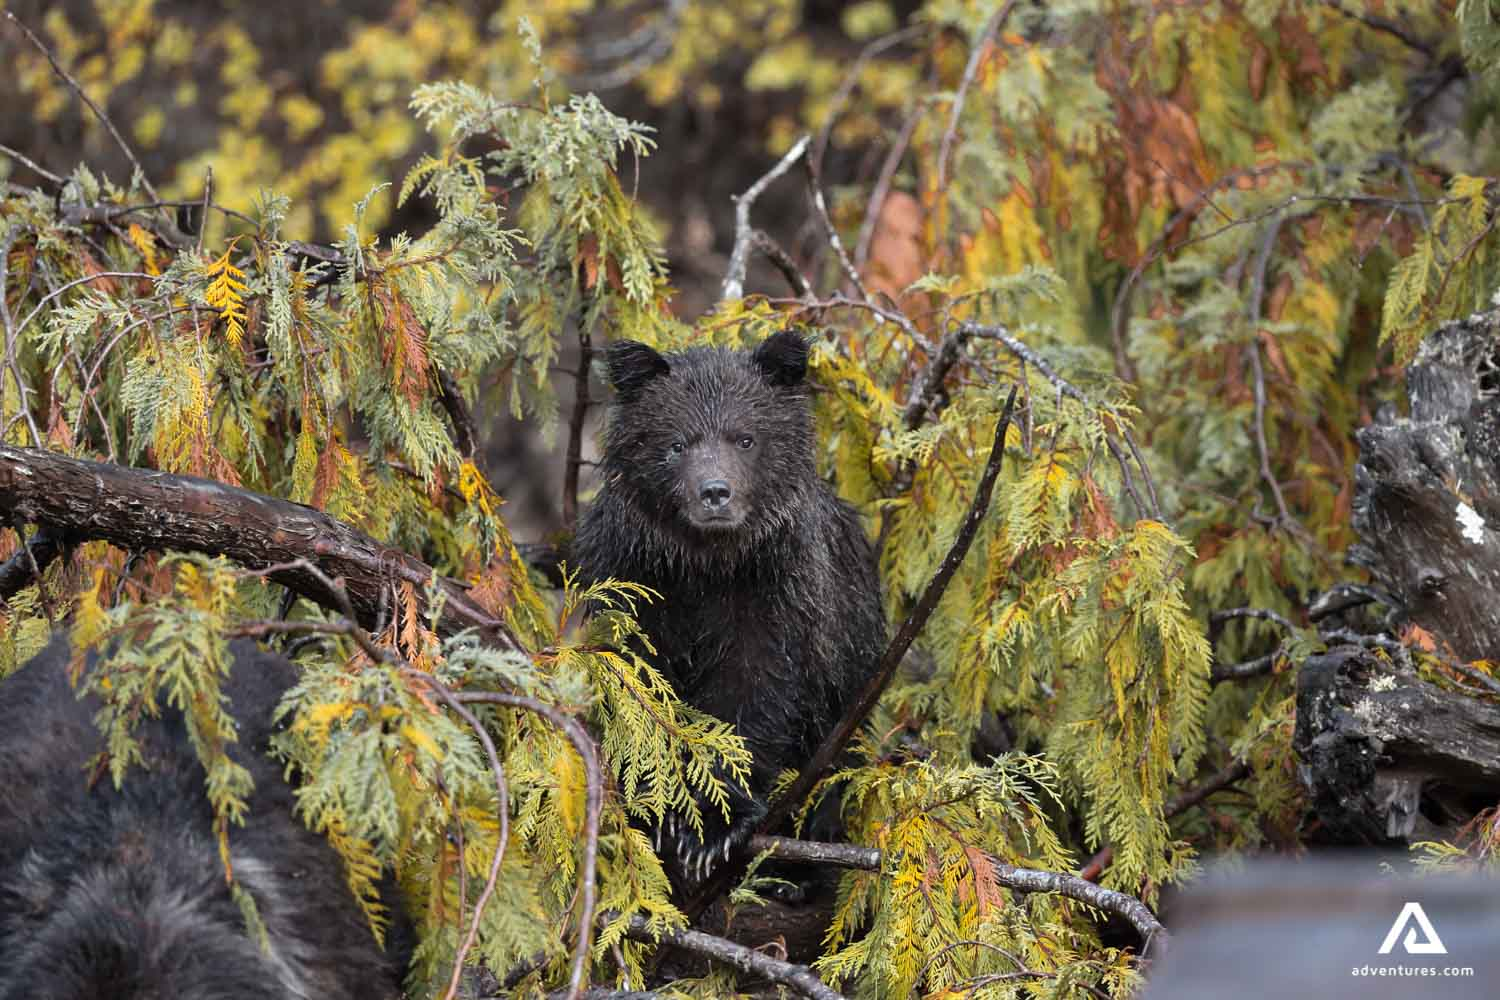 Bear cub merged with the tree